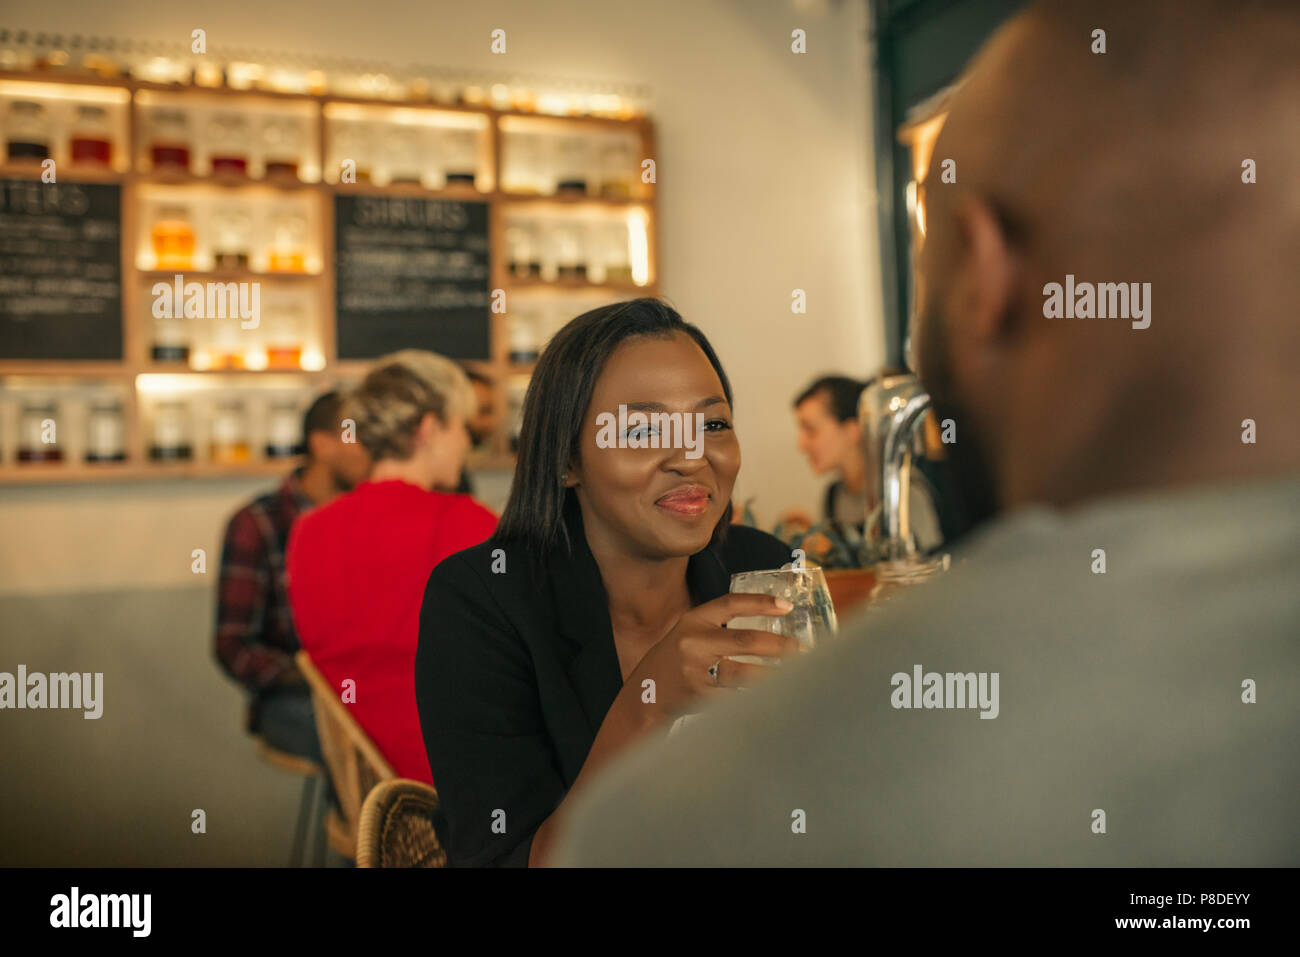 Smiling young woman enjoying a night out with her boyfriend - Stock Image